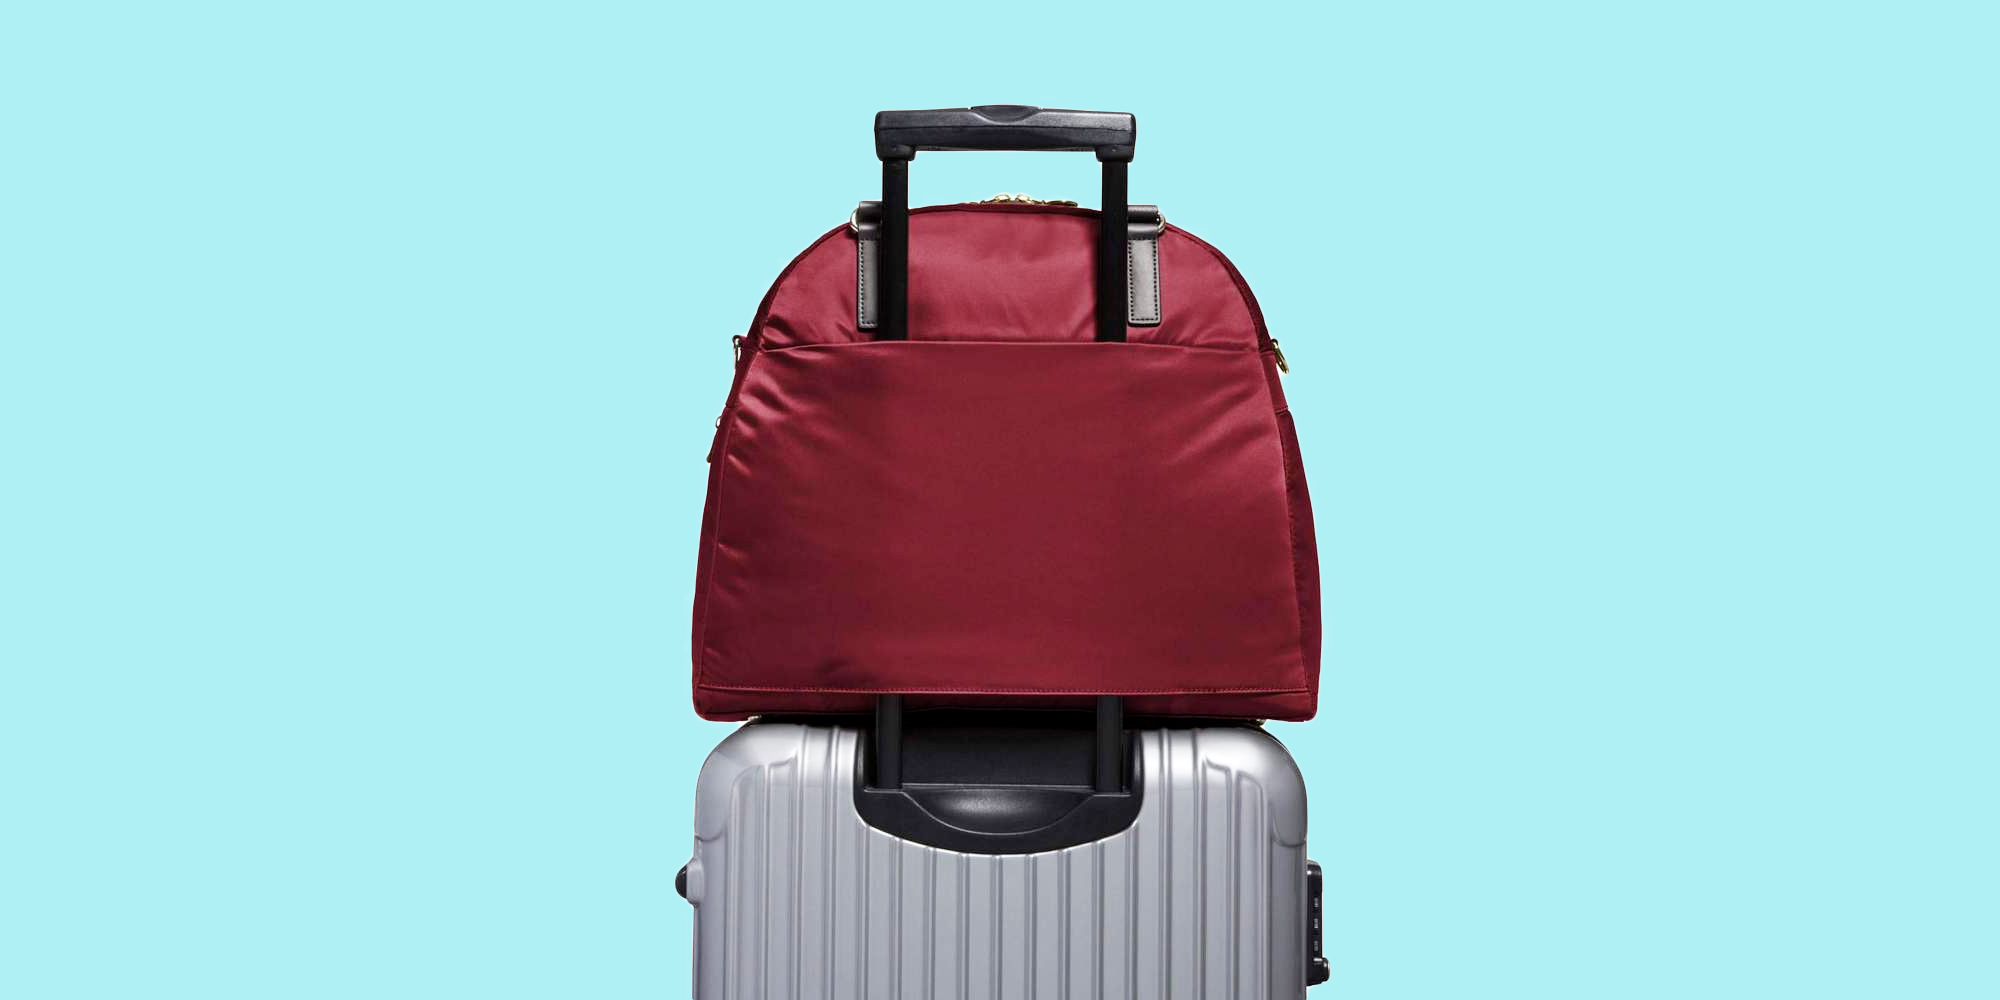 The Best Underseat Luggage To Buy In 2019 According To Textile Experts